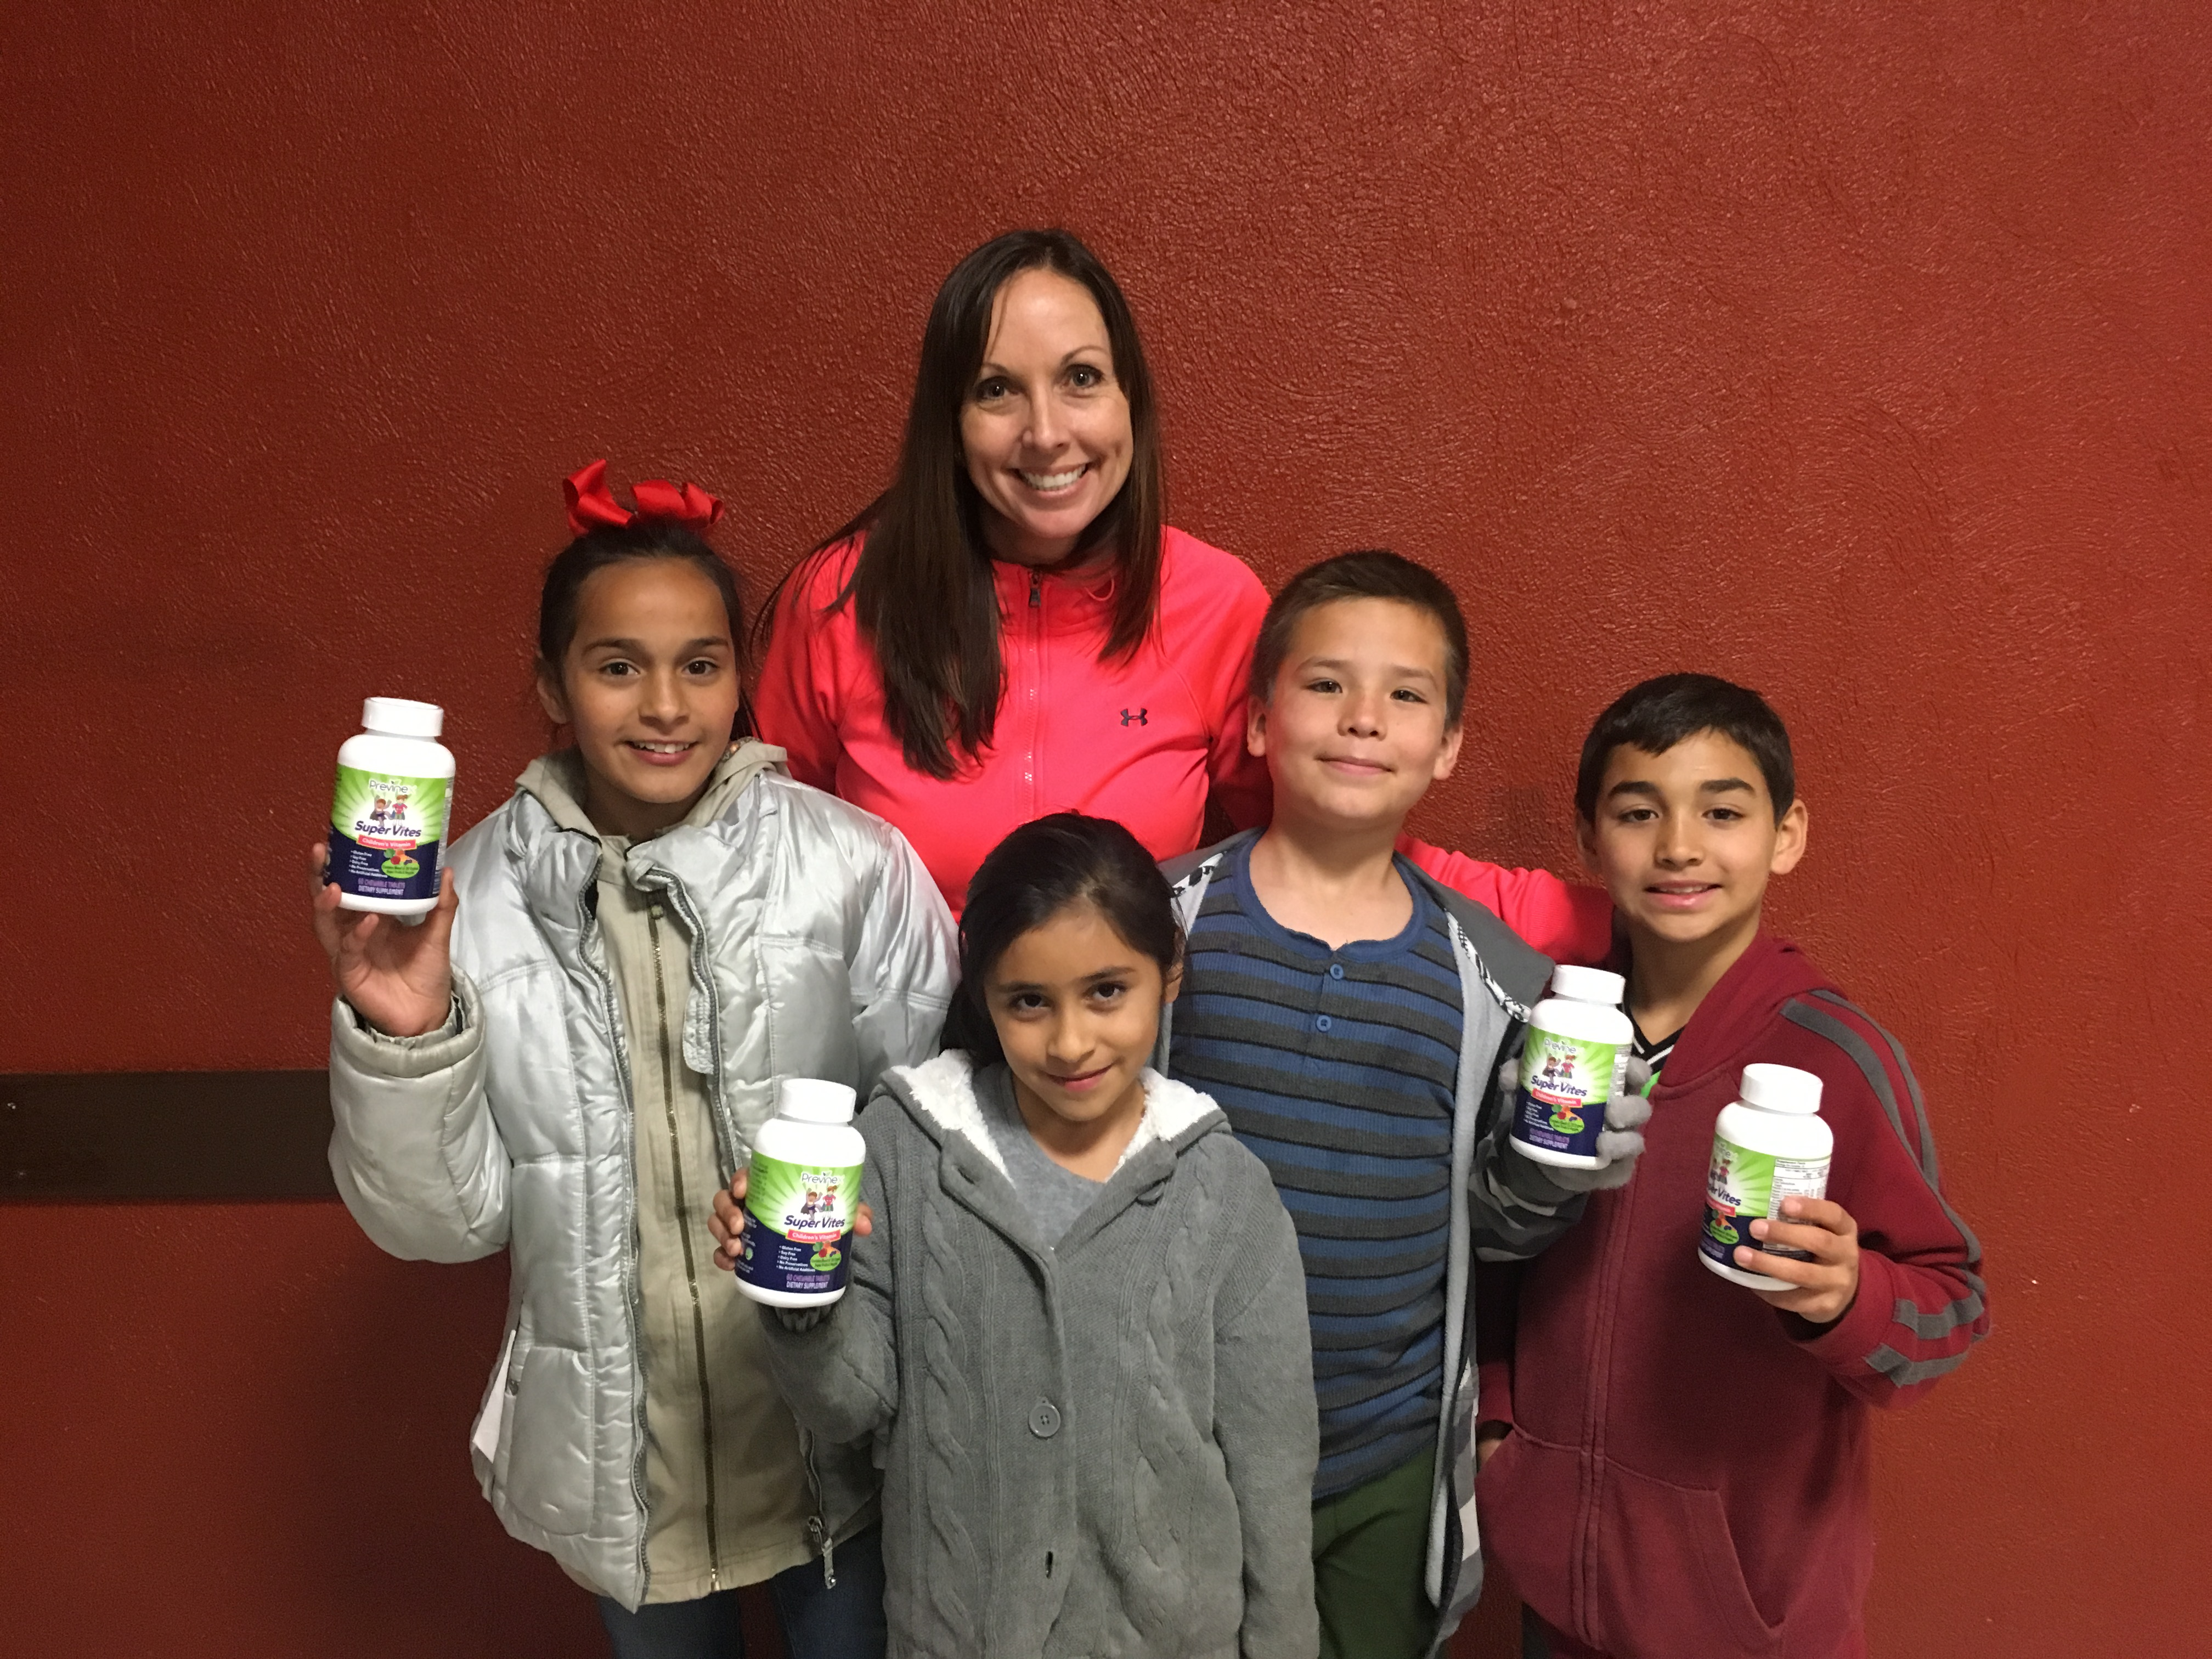 Previnex Gives Back Serving Children In Mexico